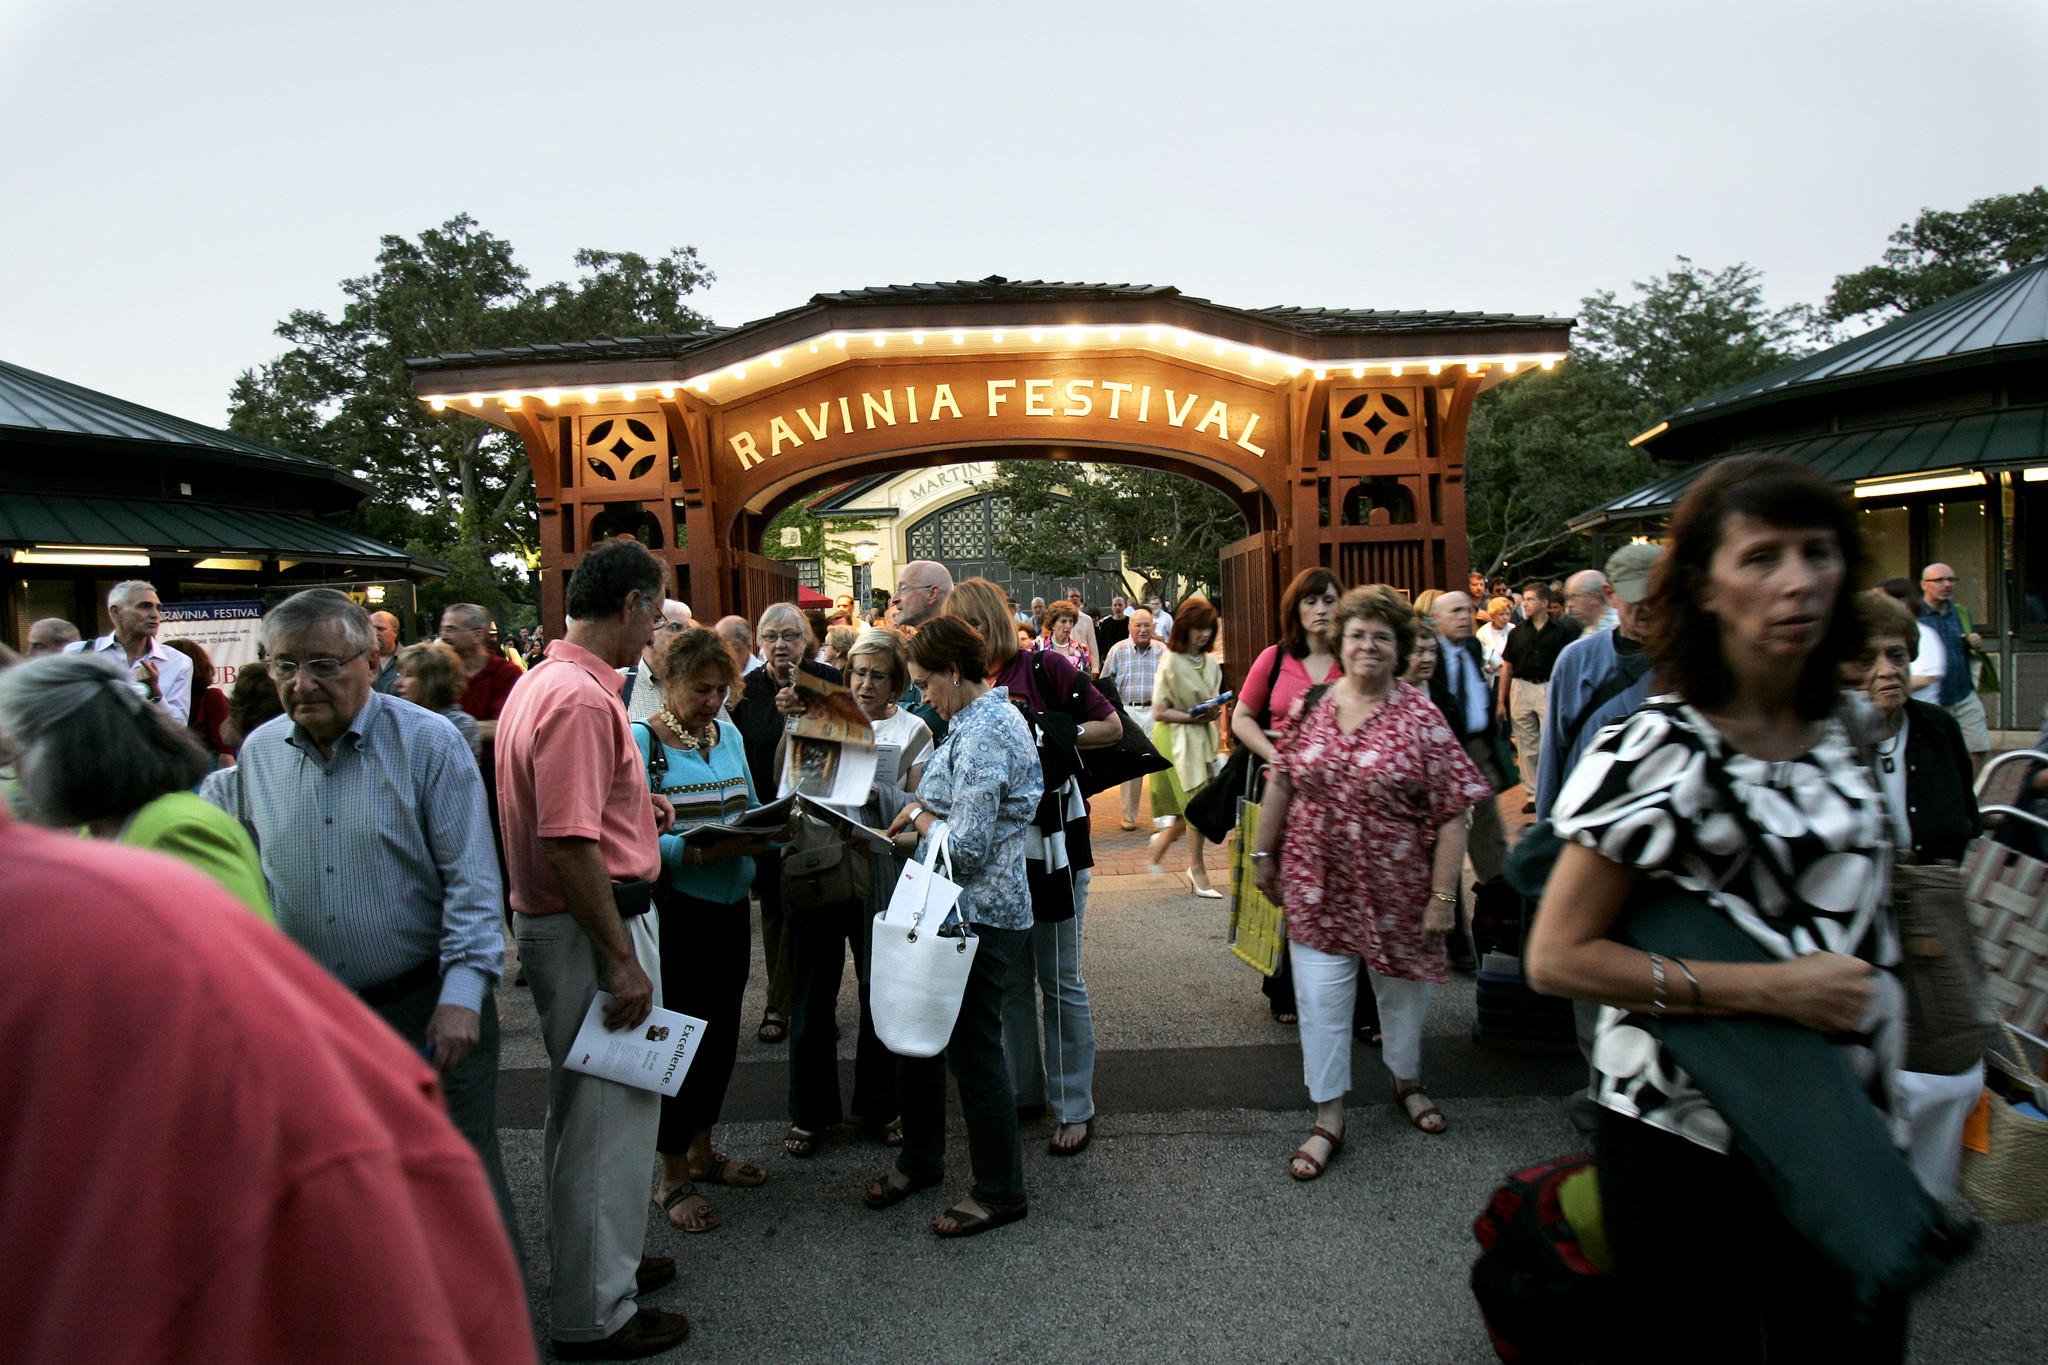 The Ravinia Festival crowd exits the gala celebrating the 80th birthday of Stephen Sondheim with the Chicago Symphony Orchestra.